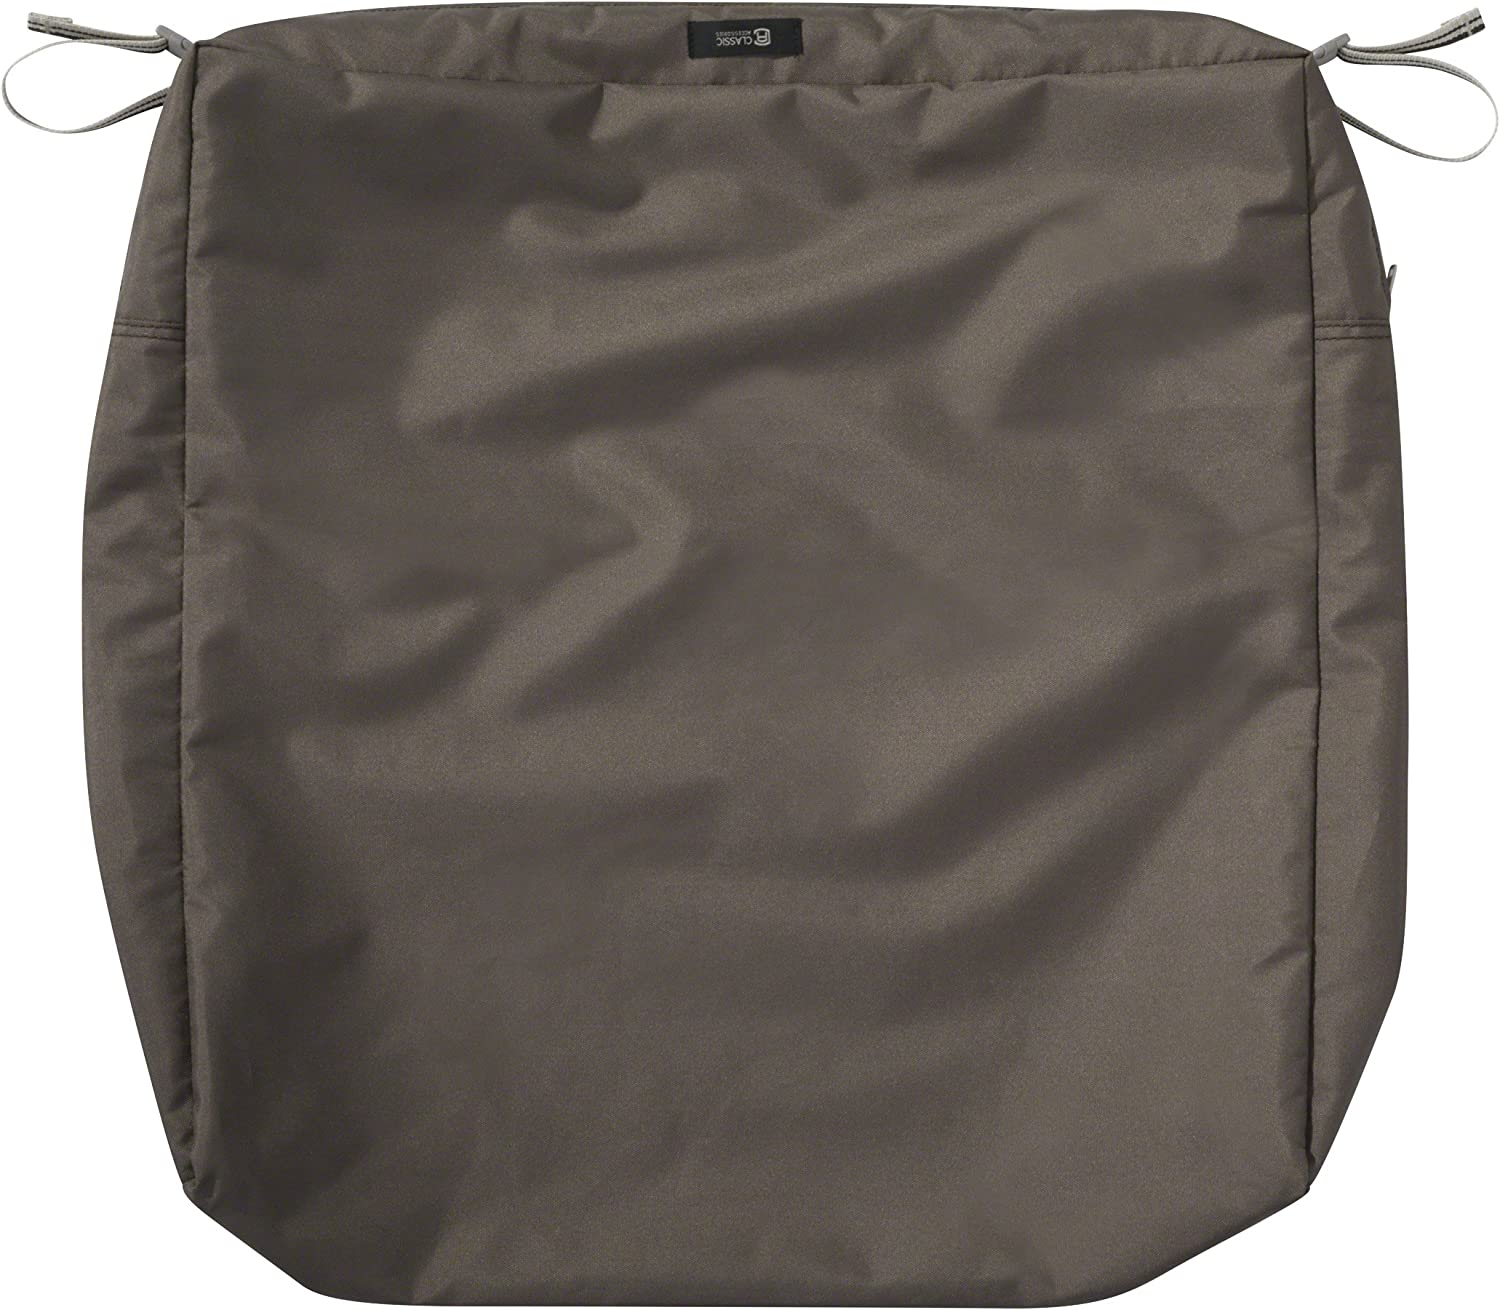 Classic Accessories Ravenna Water-Resistant 21 x 19 x 5 Inch Rectangle Outdoor Seat Cushion Slip Cover, Patio Furniture Chair Cushion Cover, Dark Taupe